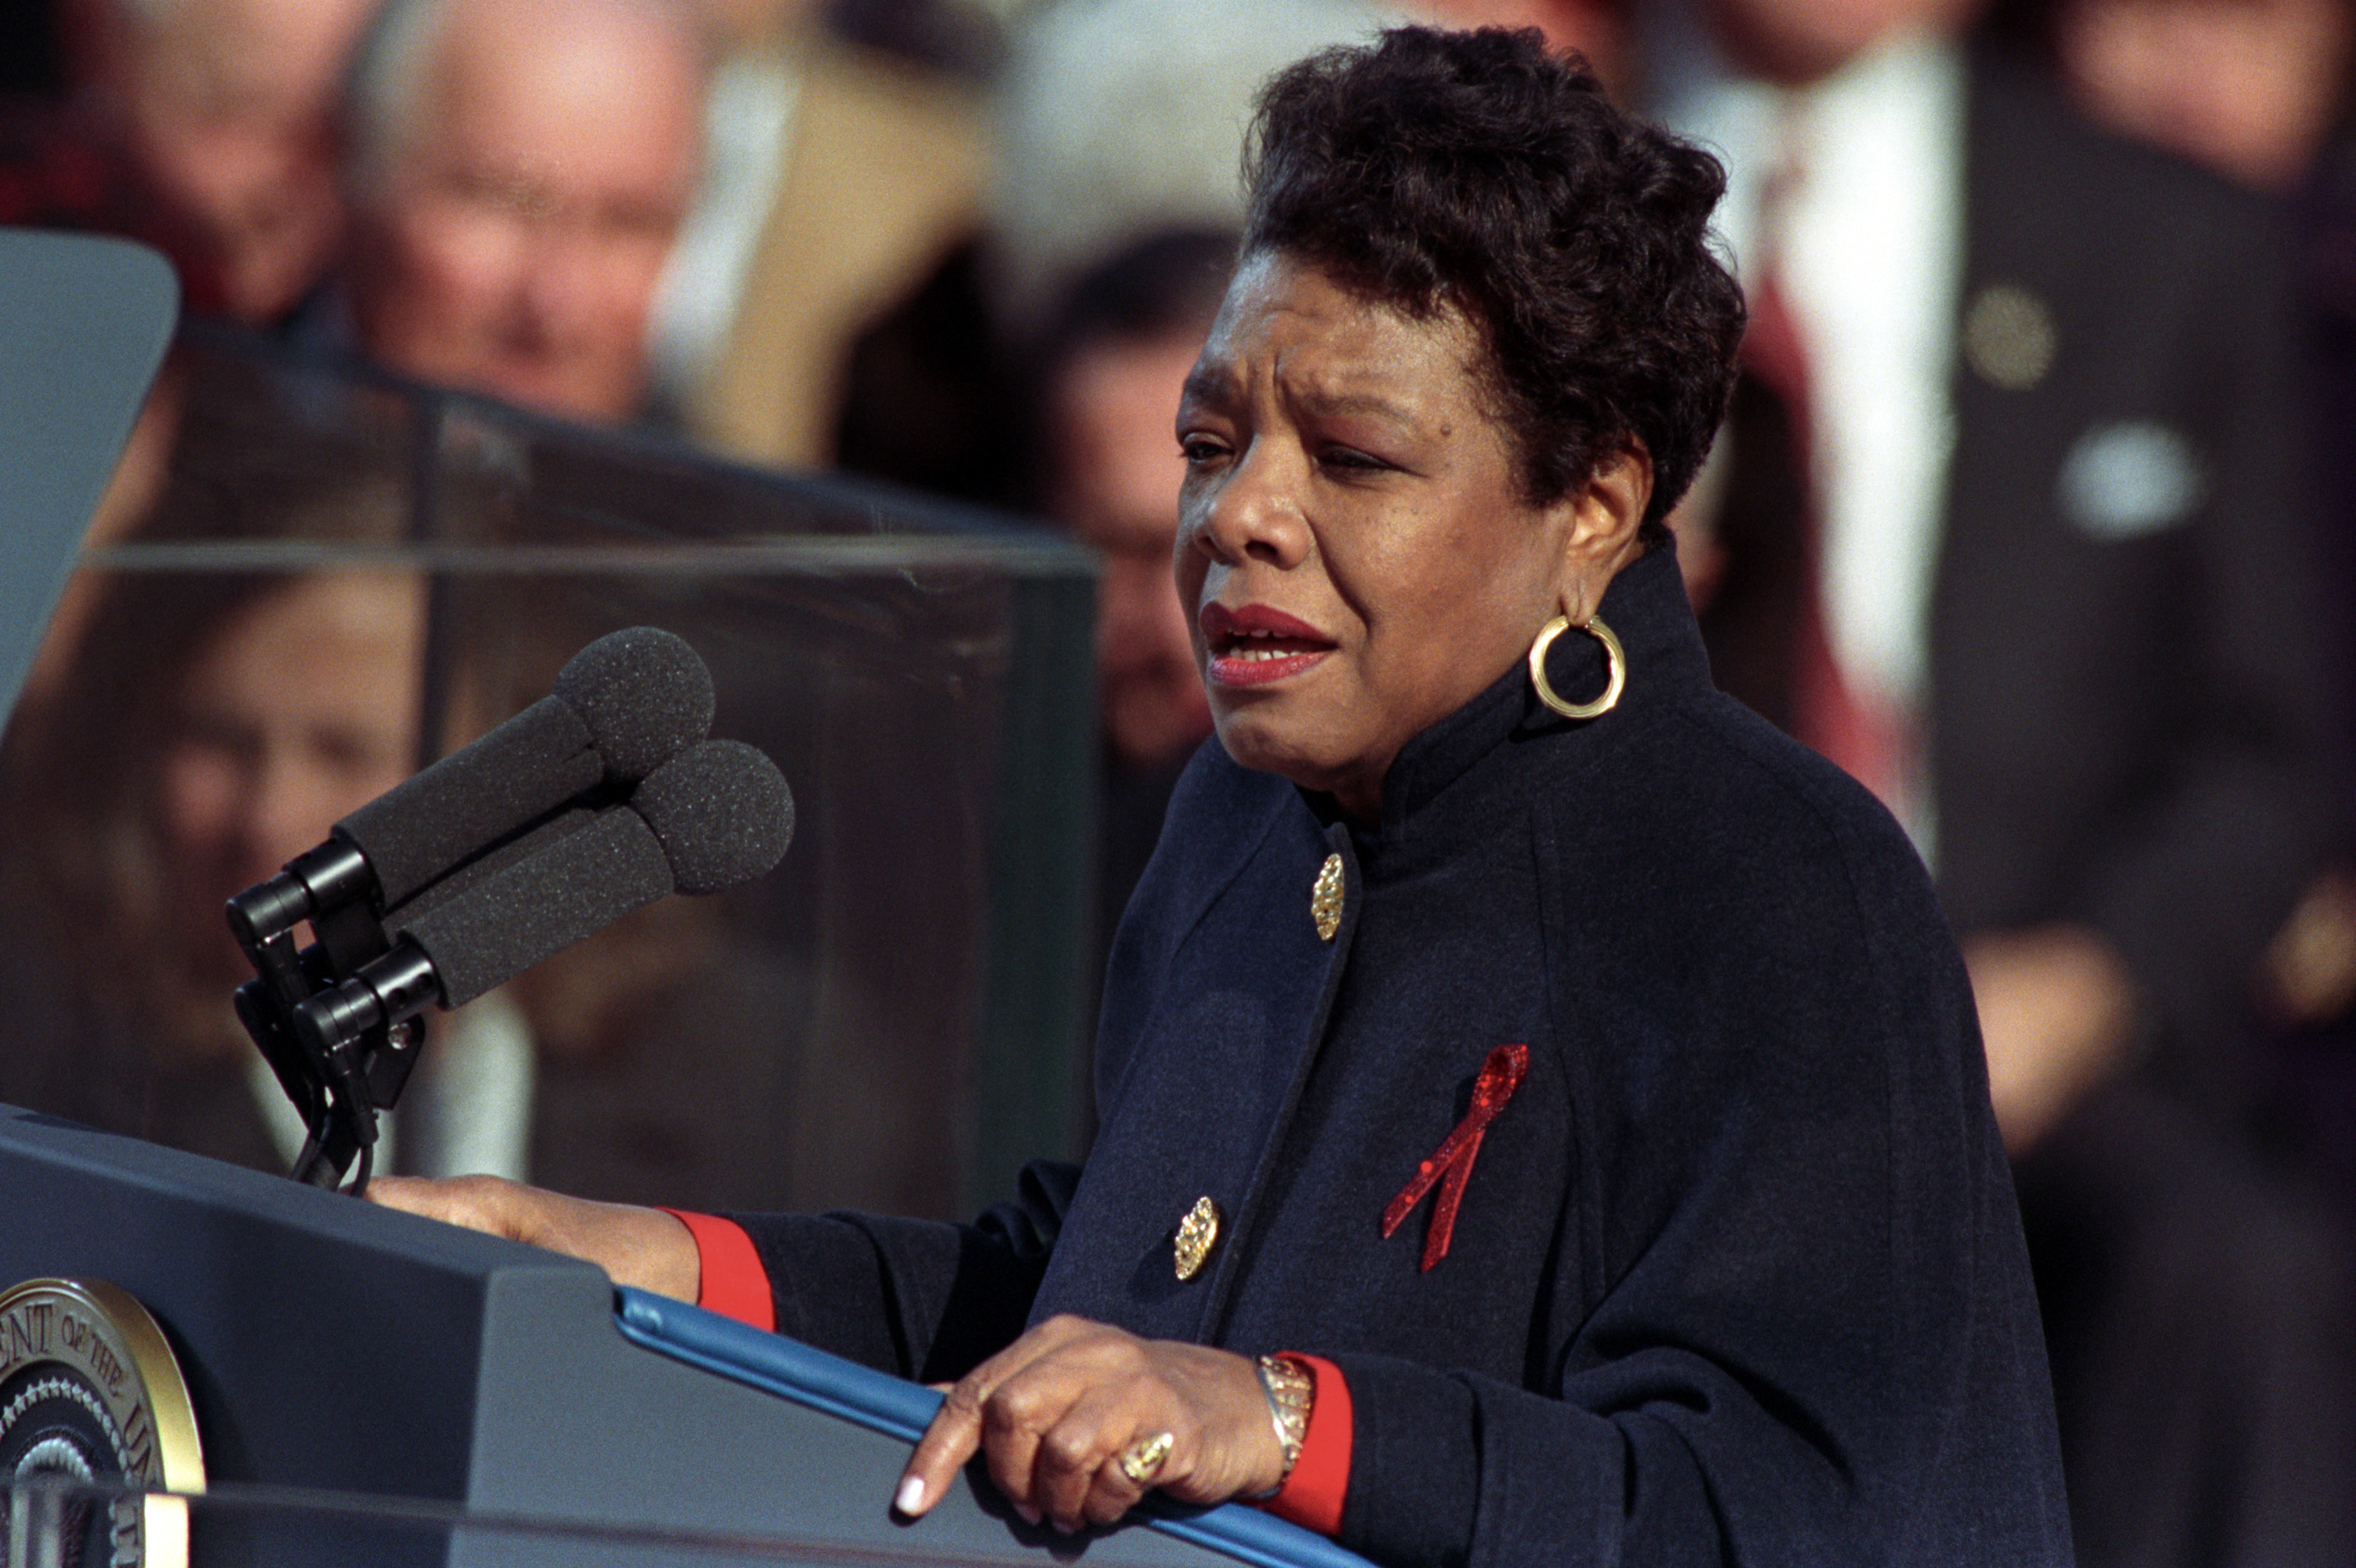 Maya Angelou, shown here at Bill Clinton's 1992 inauguration, was a titanic figure in American culture.